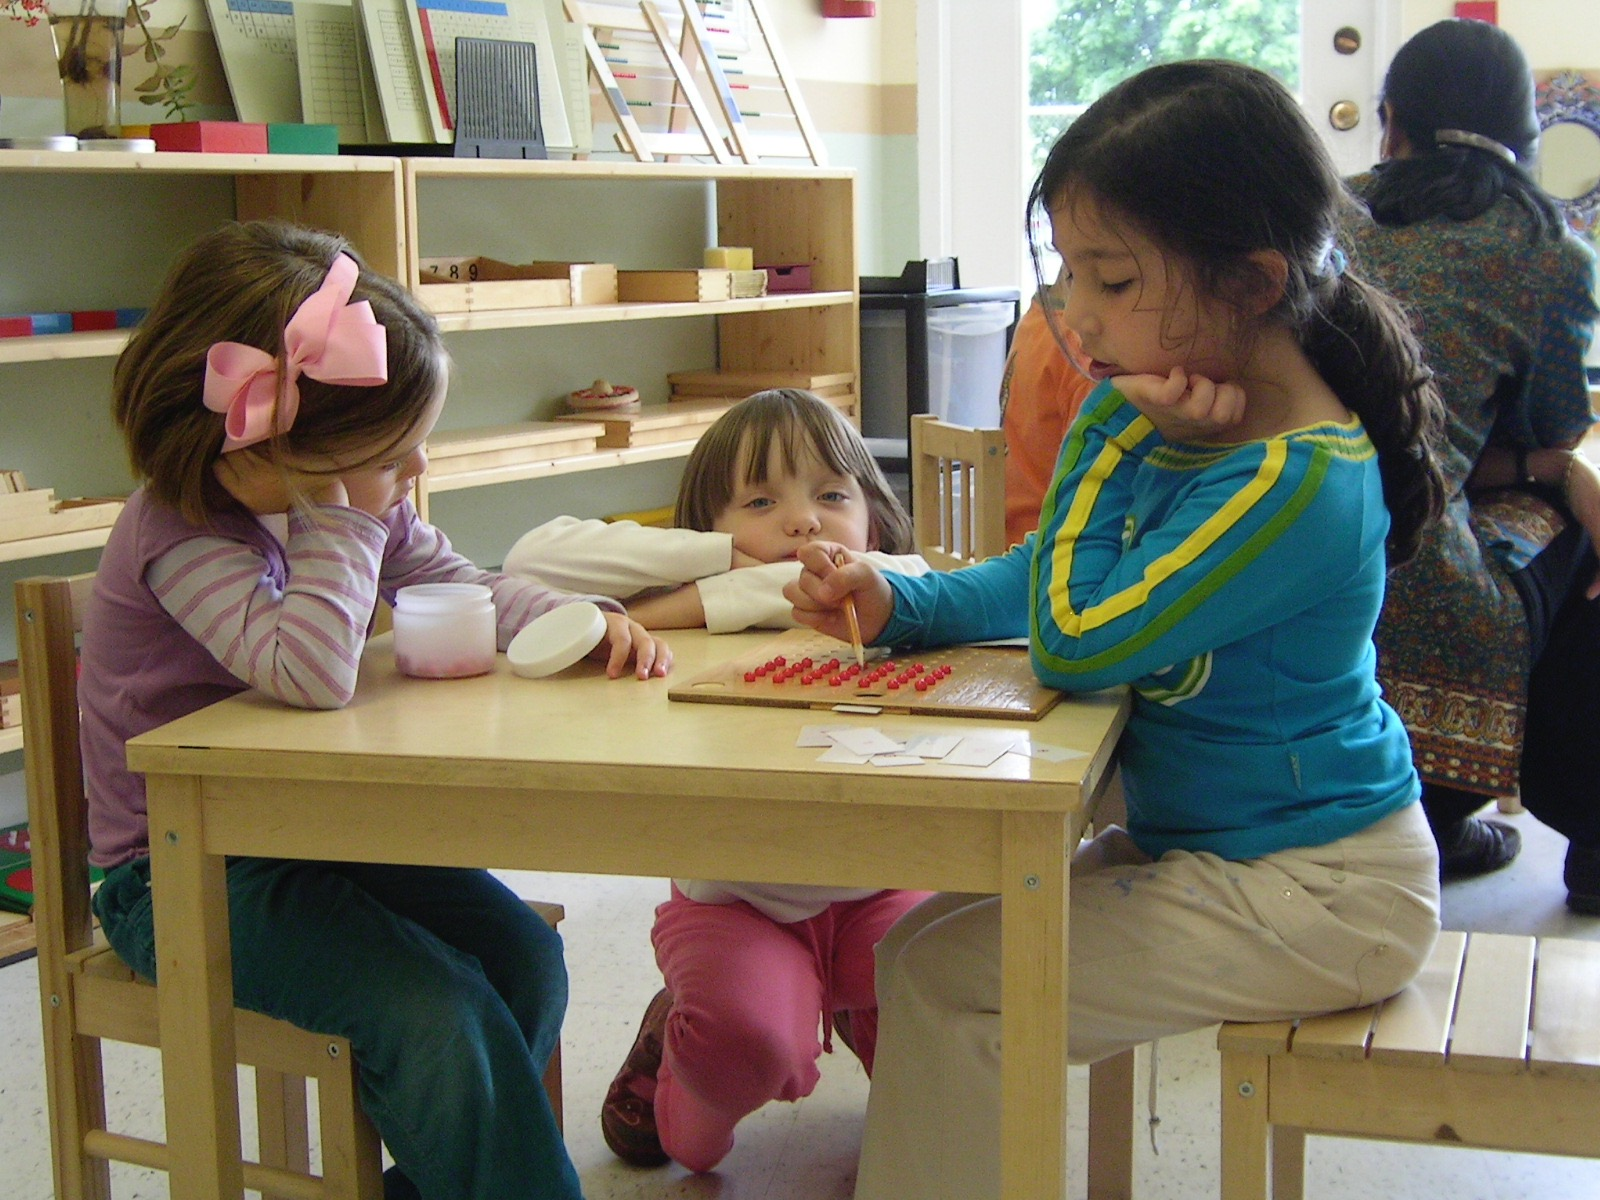 Children working in classroom at Kaban Montessori in Mississauga.